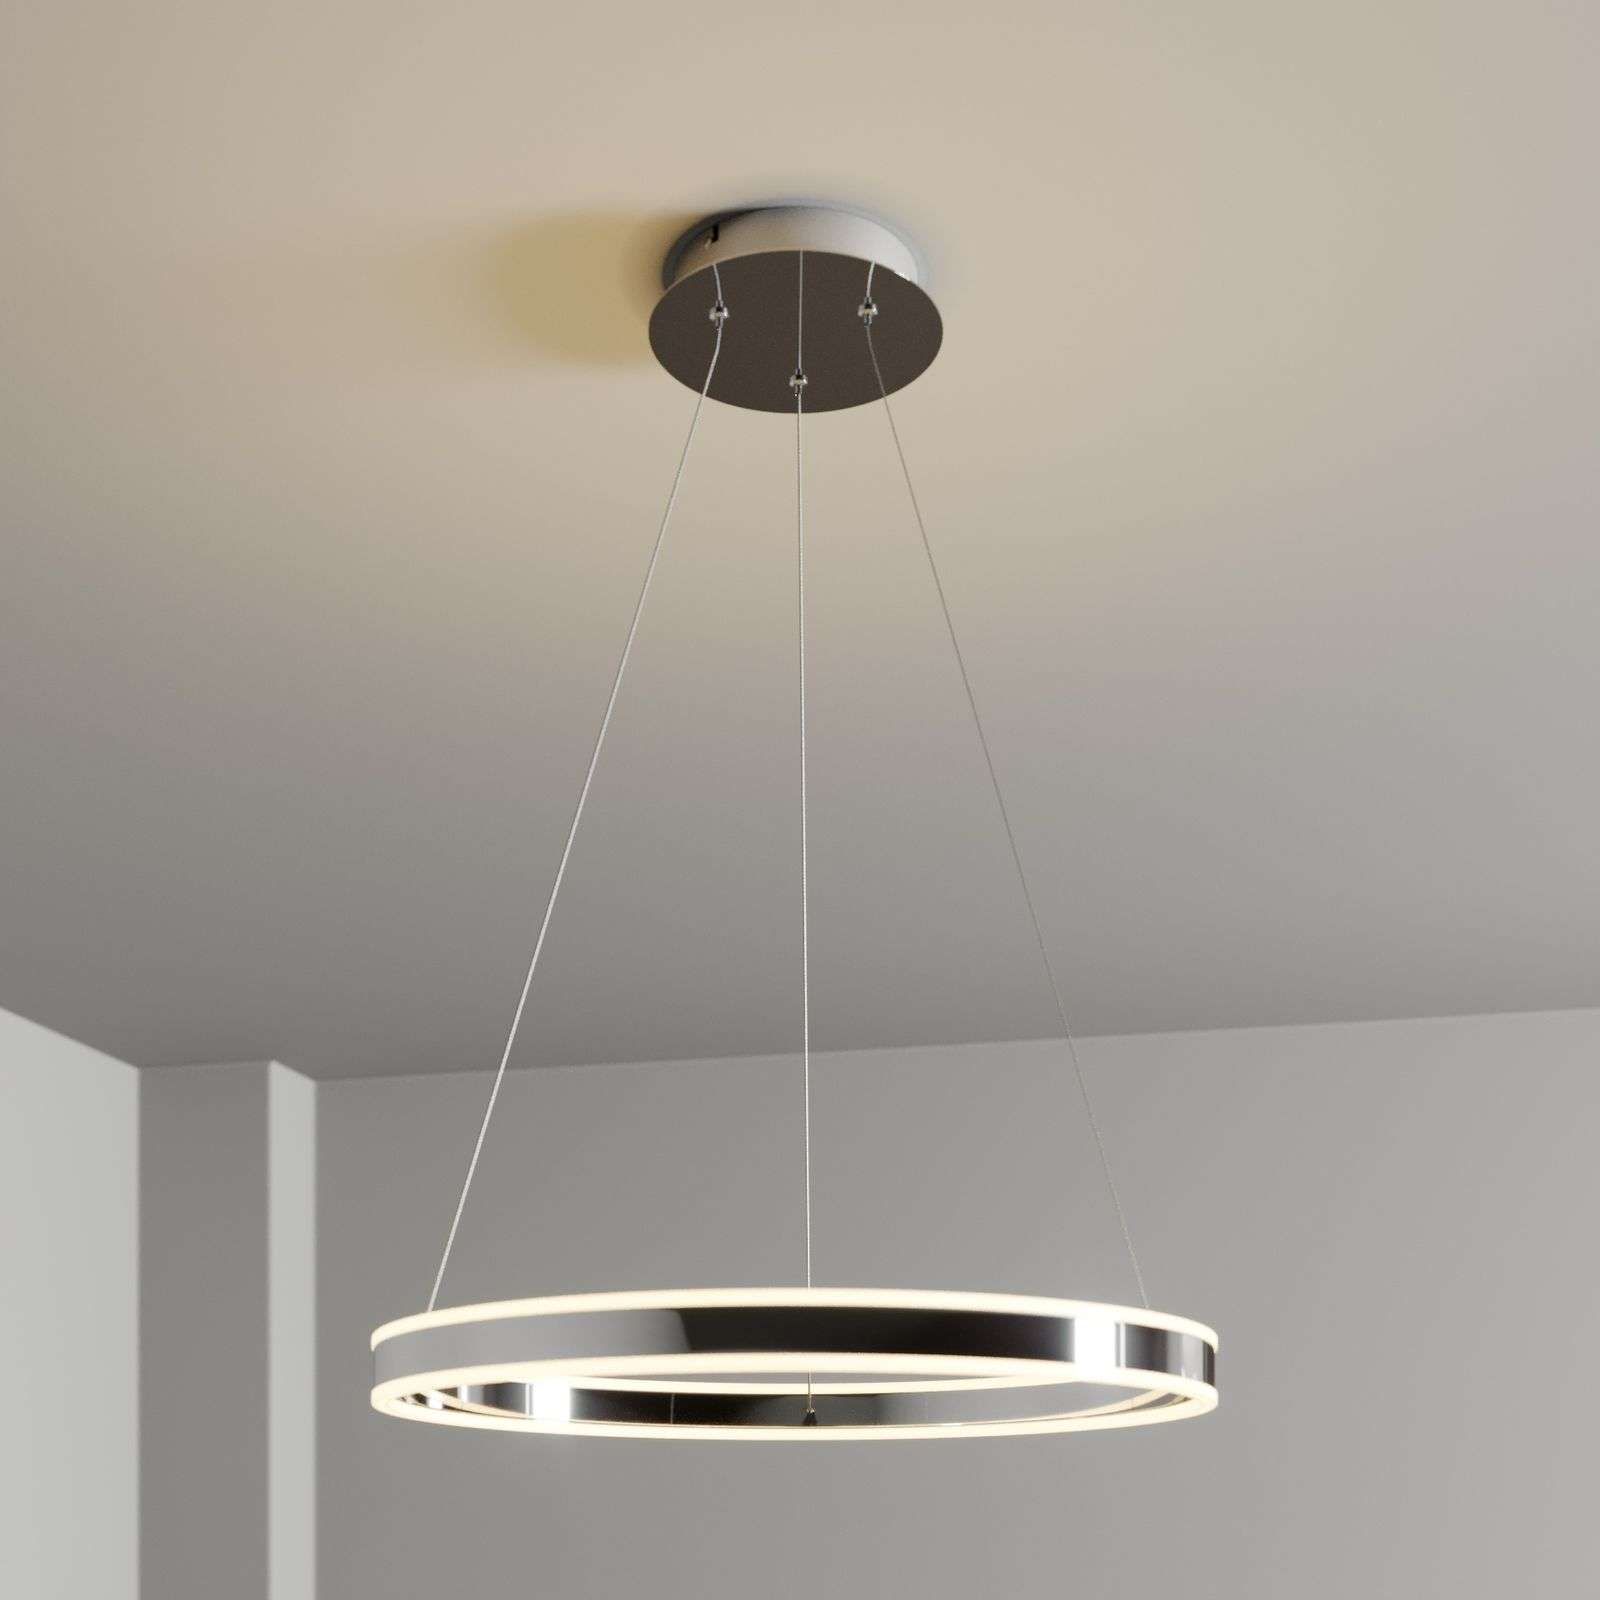 Suspension LED Lyani chromée et dimmable, 60 cm